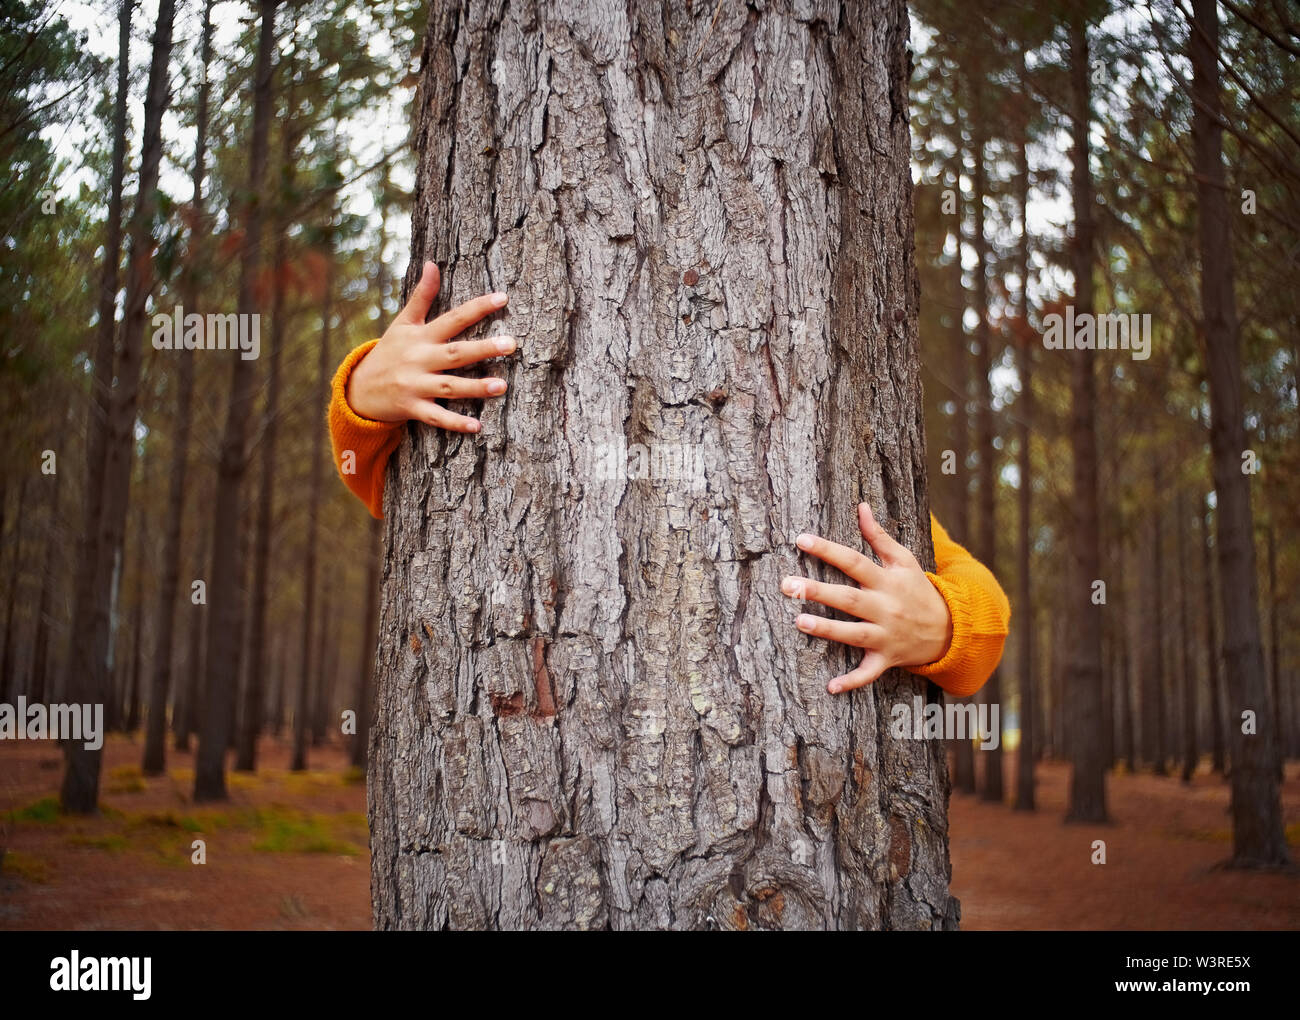 Close-up woman's hand hugging tree trunk Photo Stock